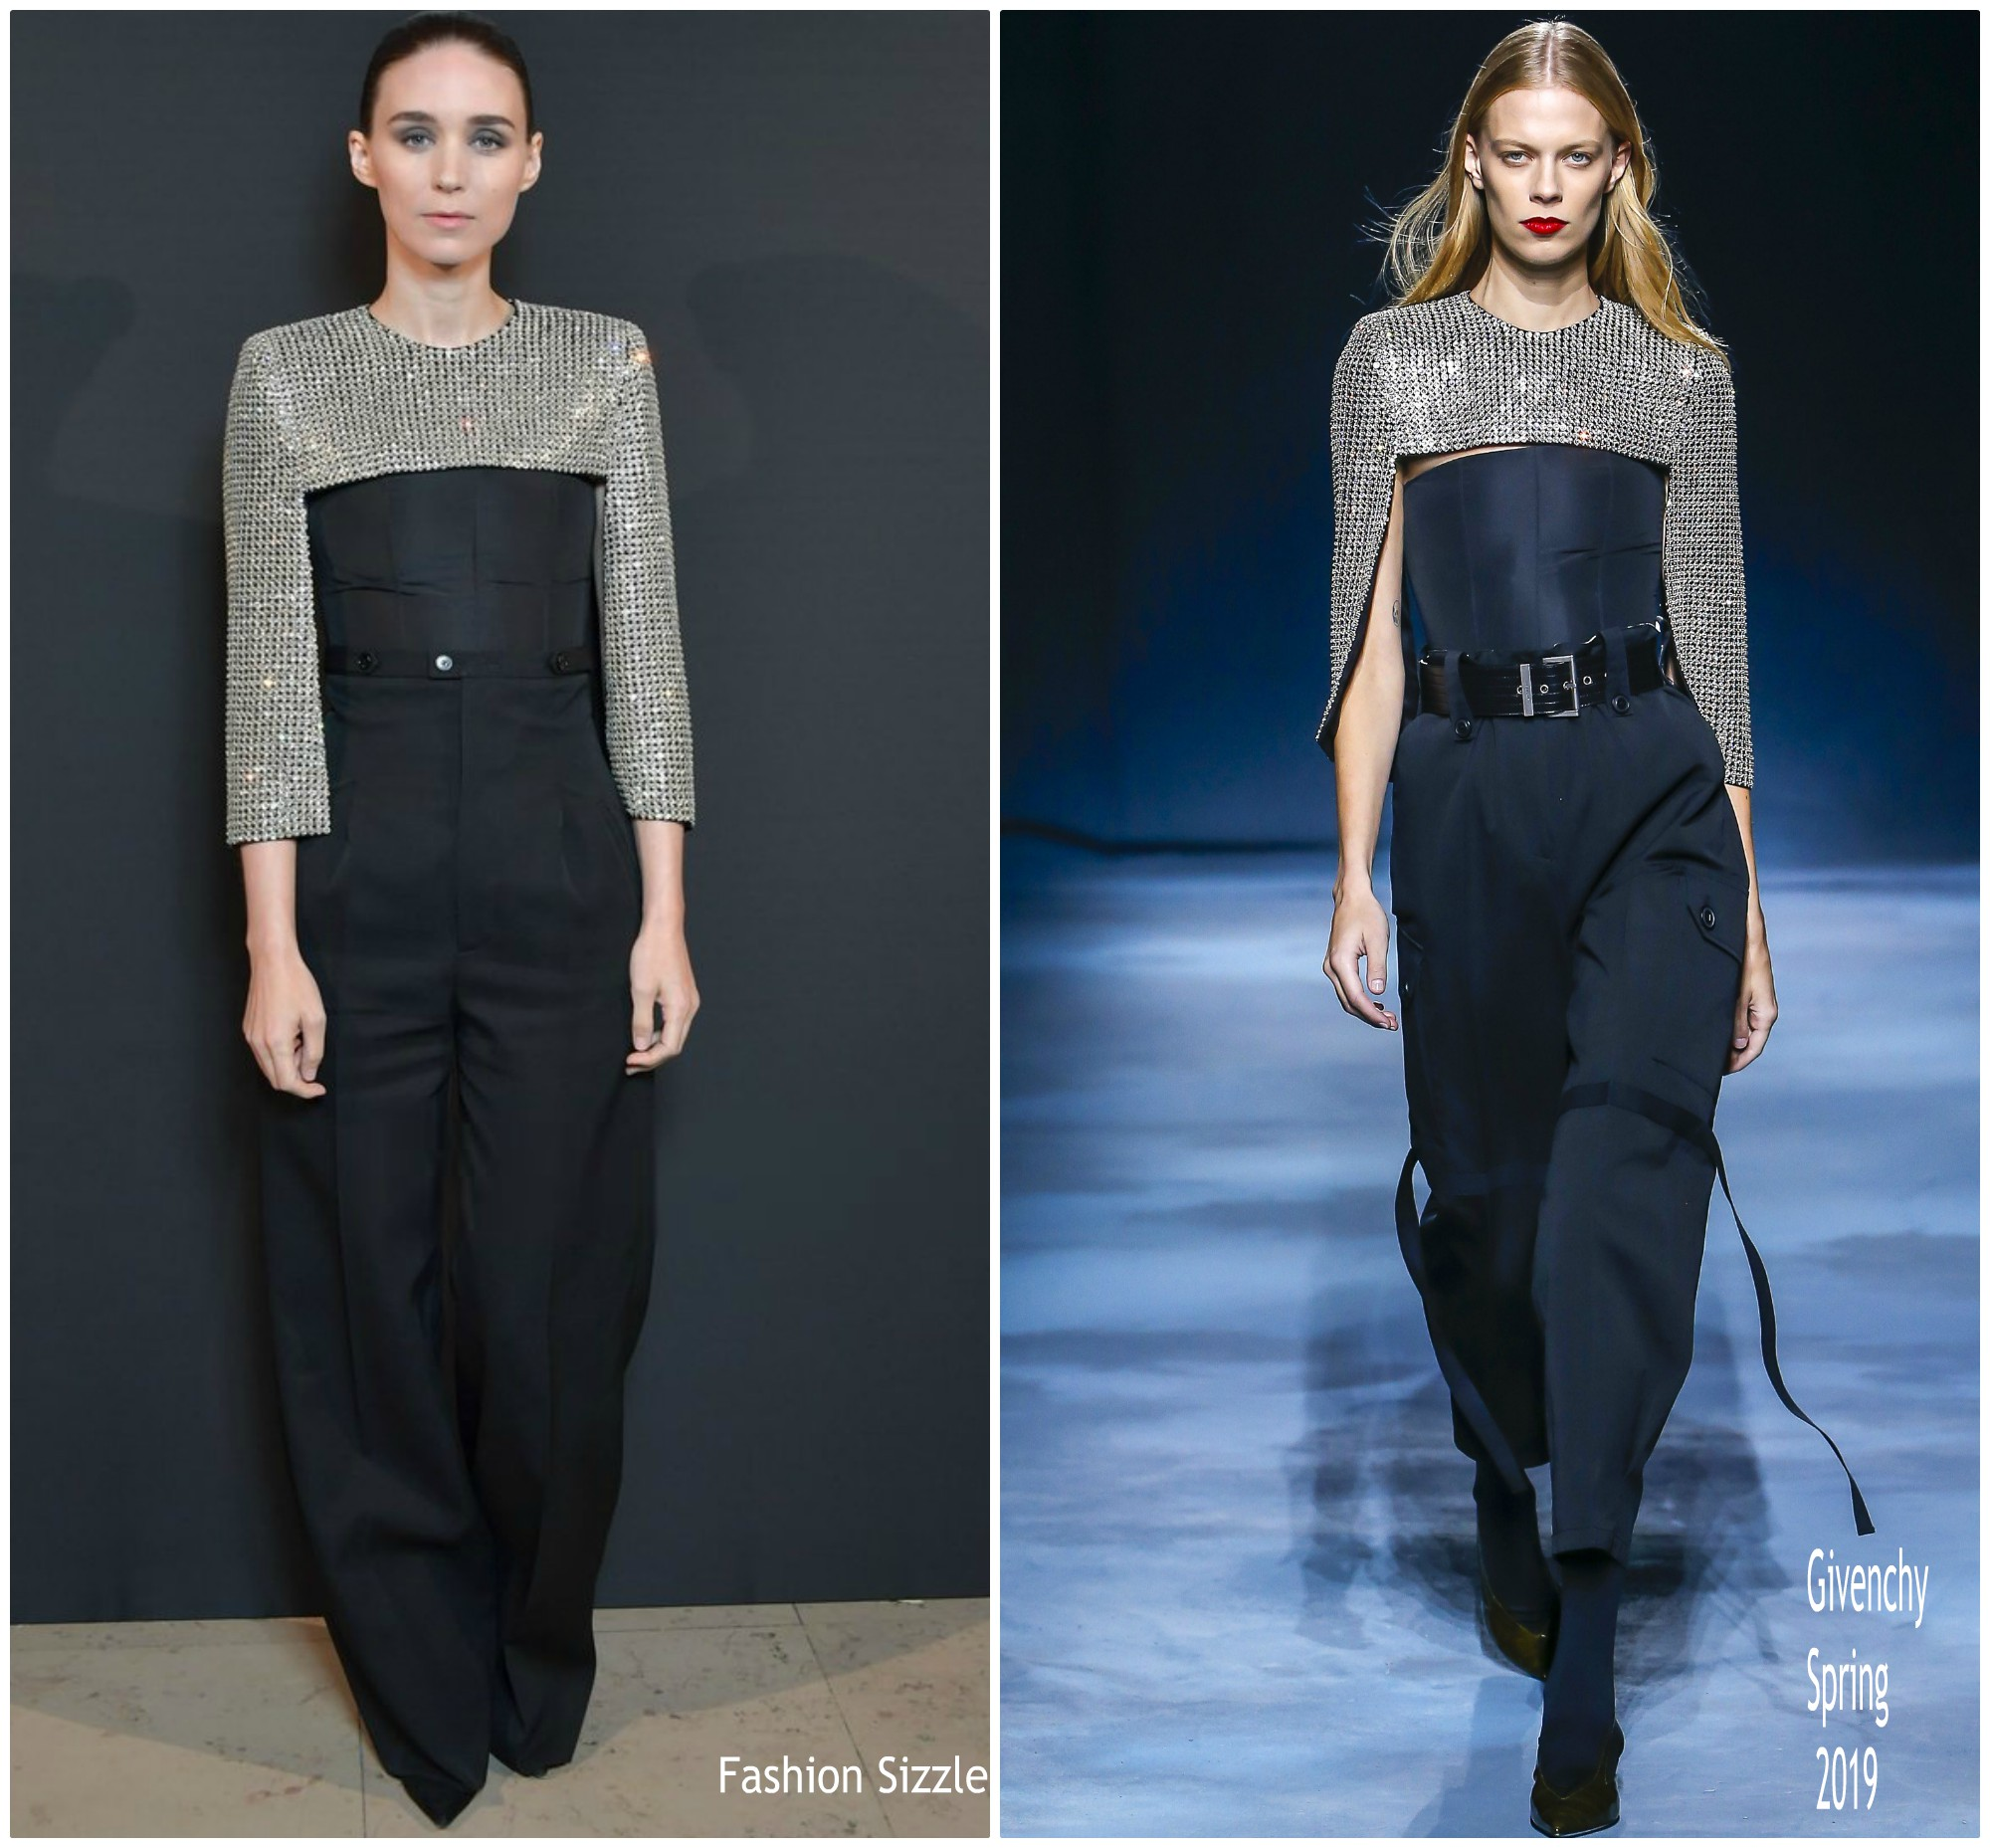 rooney-mara-in-givenchy-linterdit-givenchy-photocall